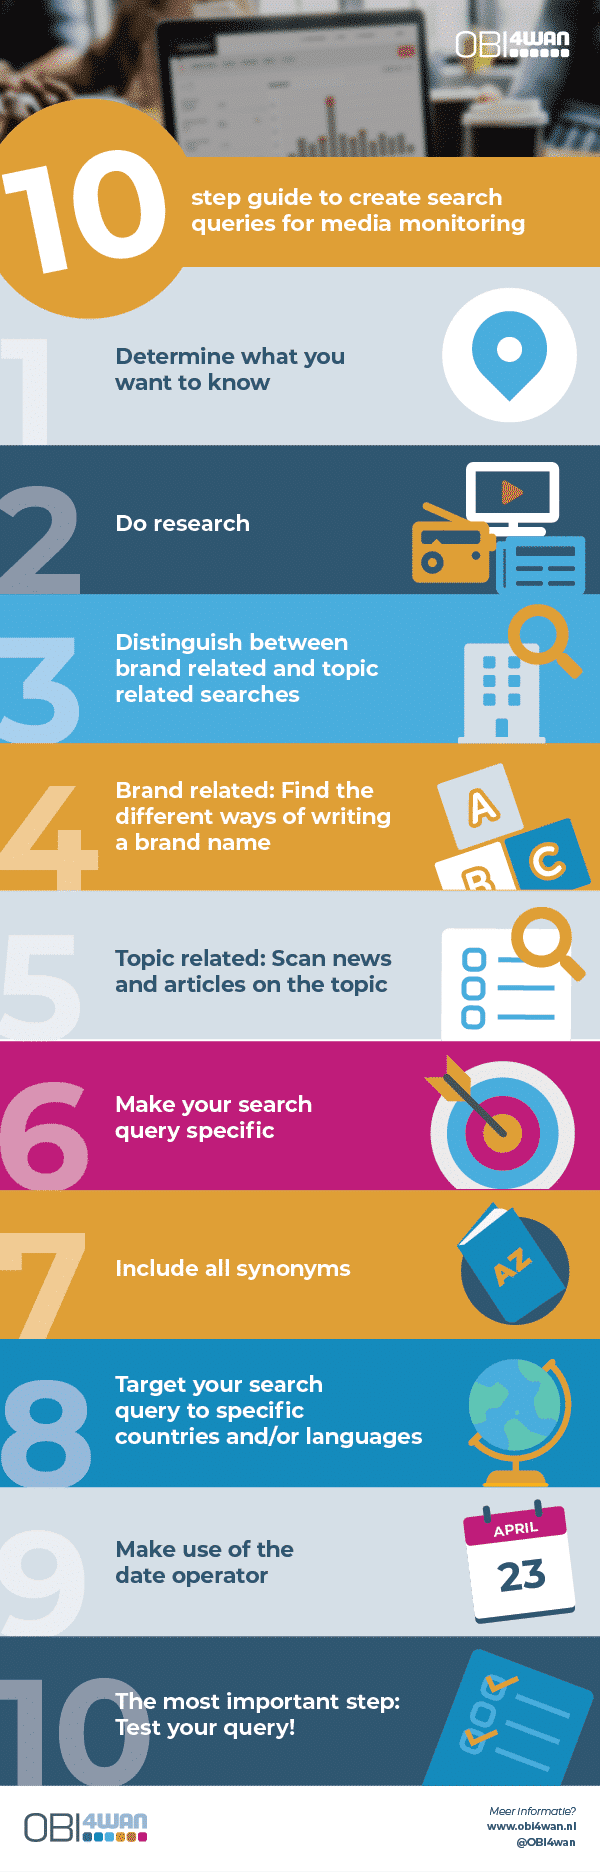 10-steps-guide-search-queries